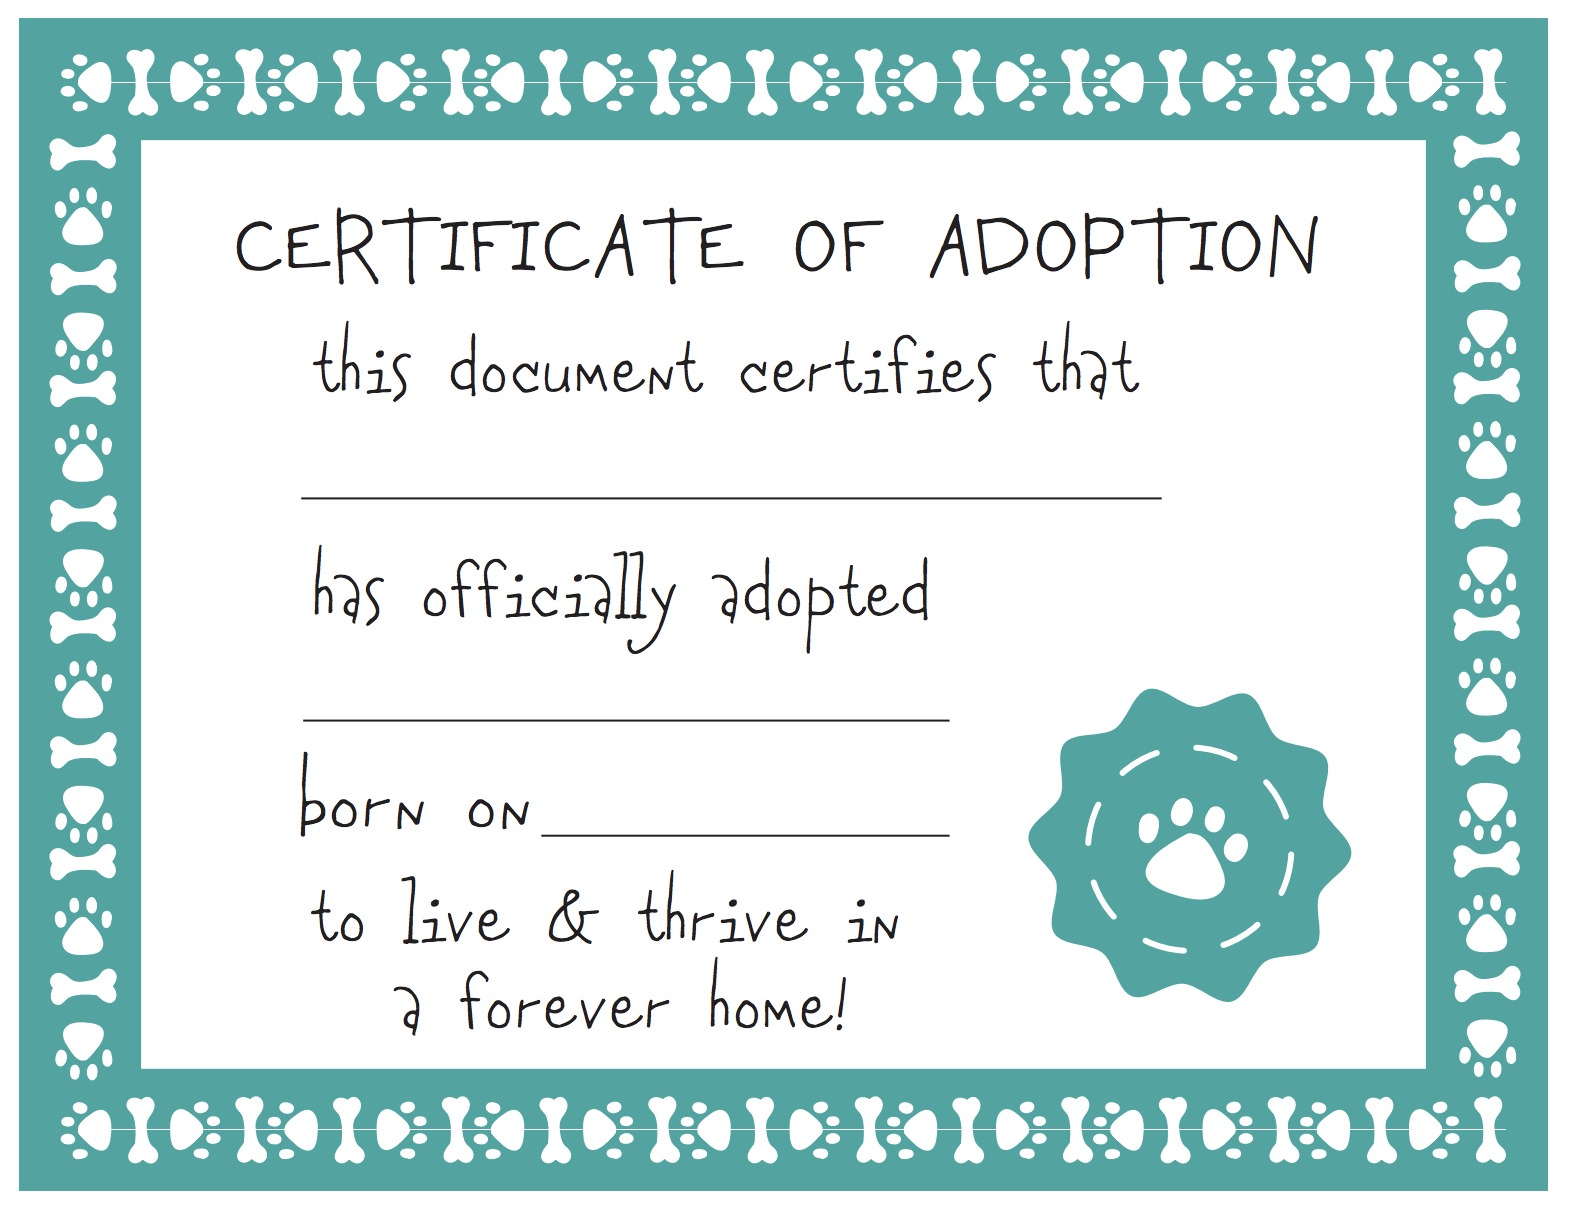 Adoption Certificate Templates And Pet Template With Dog Plus Free - Fake Adoption Certificate Free Printable